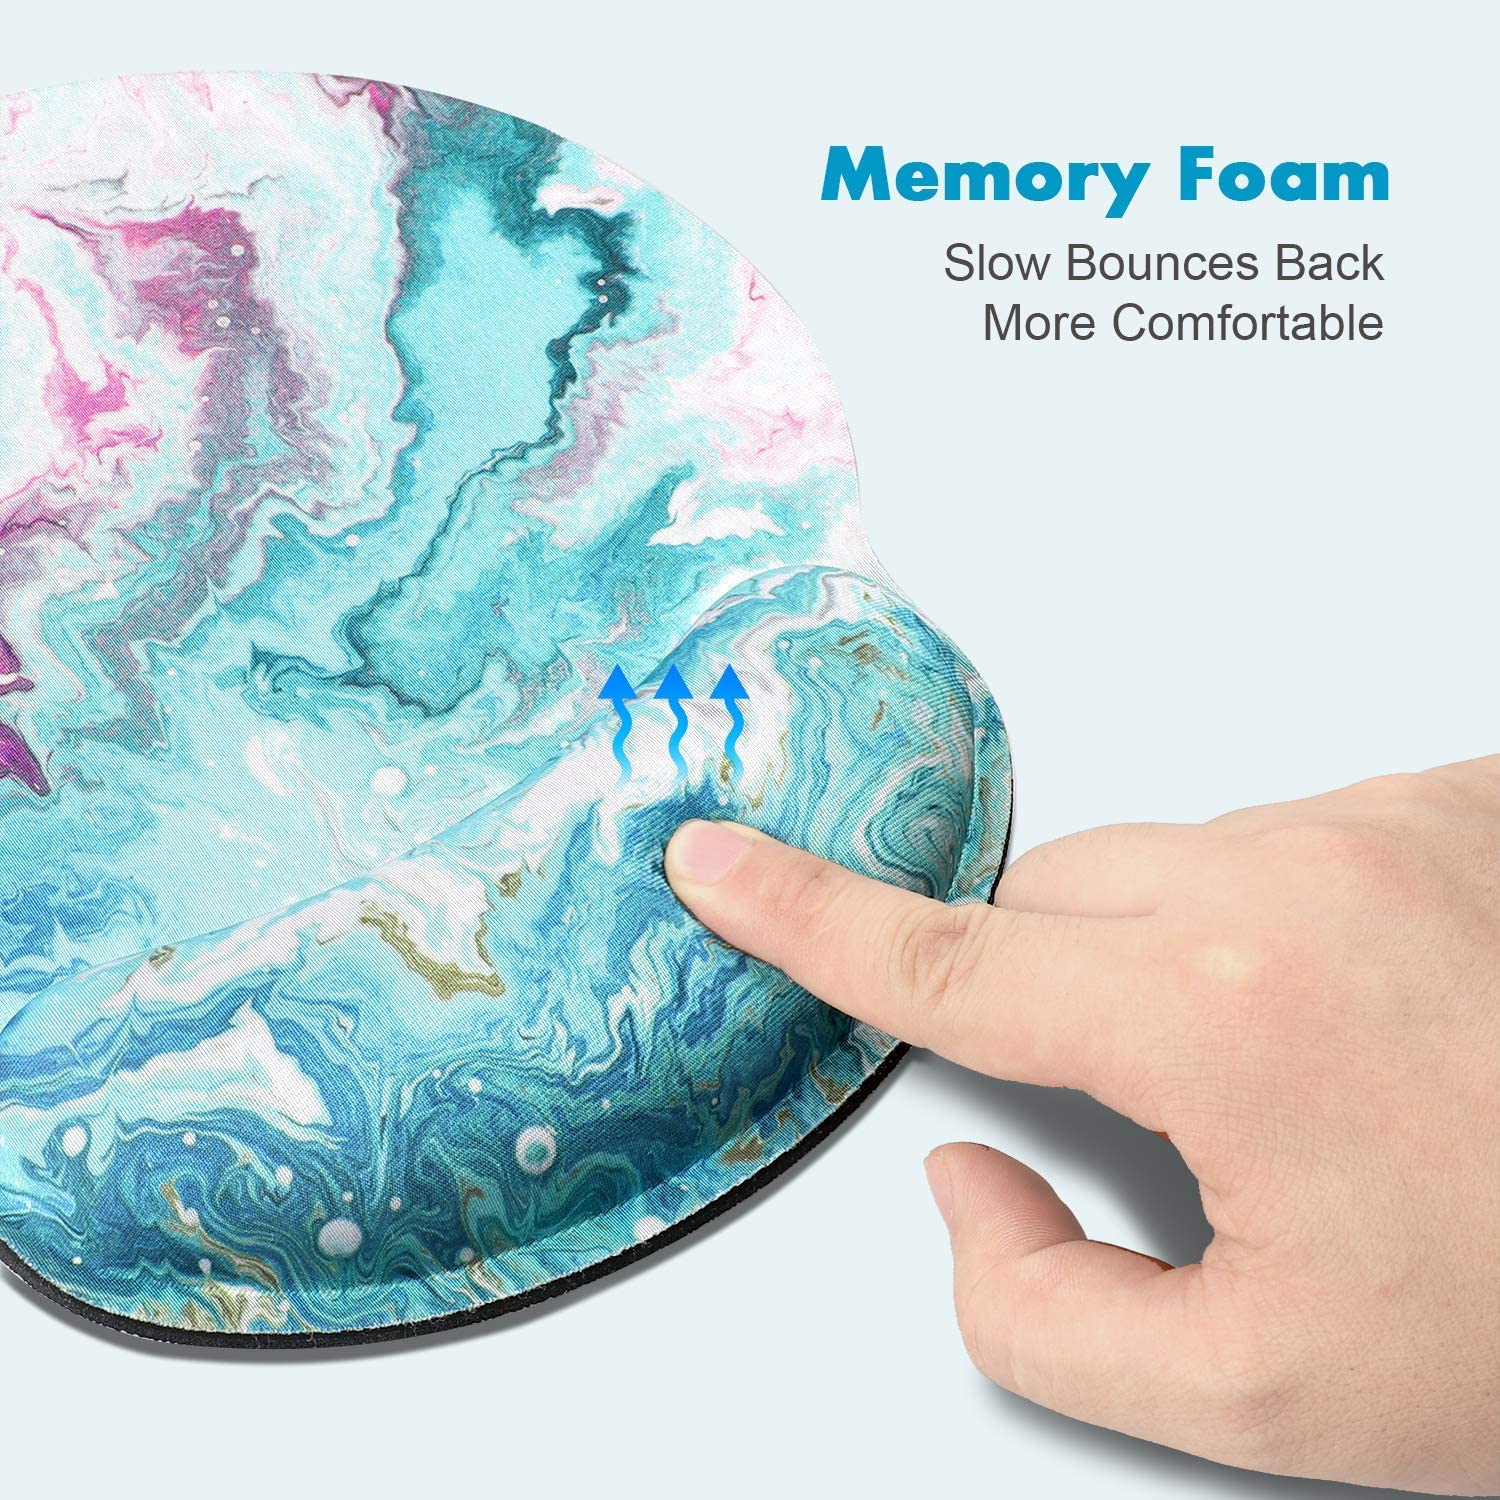 MB-002 Gaming Office Laptop HILUCKI Mouse Pad Ergonomic Mouse Mat with Wrist Support Rest Memory Foam Computer Mouse Pad with Nonslip Rubber Base for Home